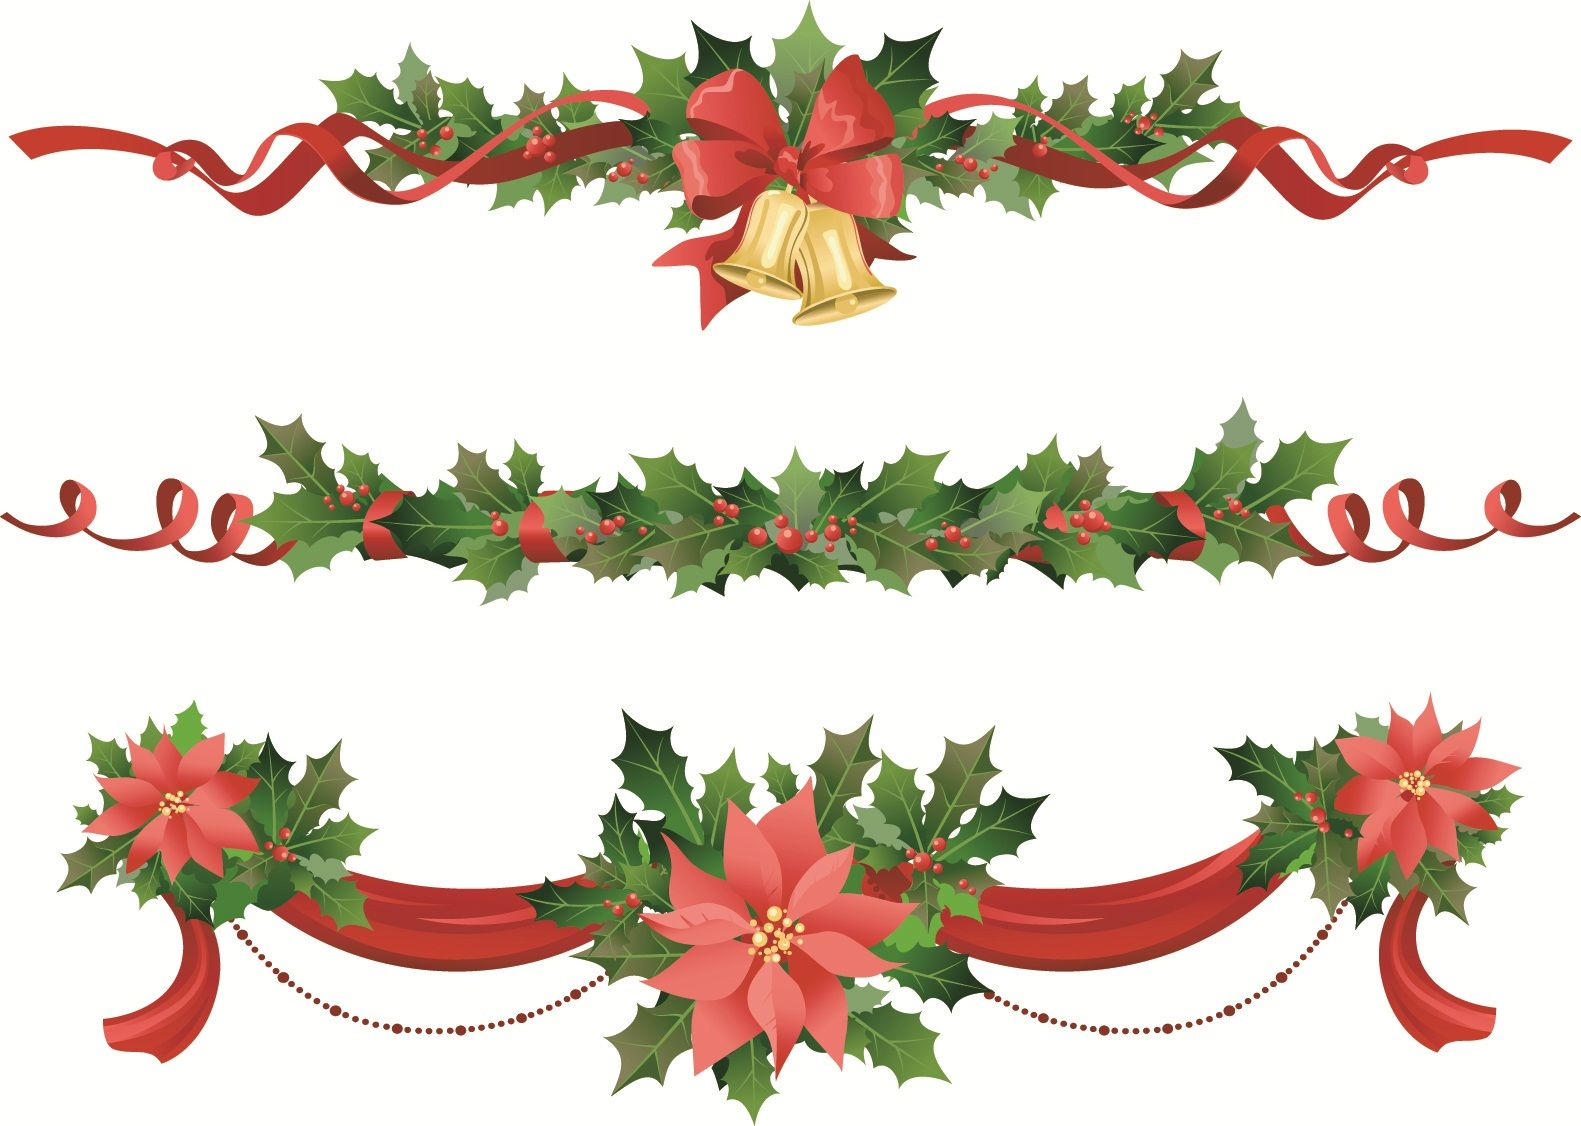 The Christmas Decorations You Must Have Our Top 20 Christmas Border Christmas Garland Fun Christmas Decorations